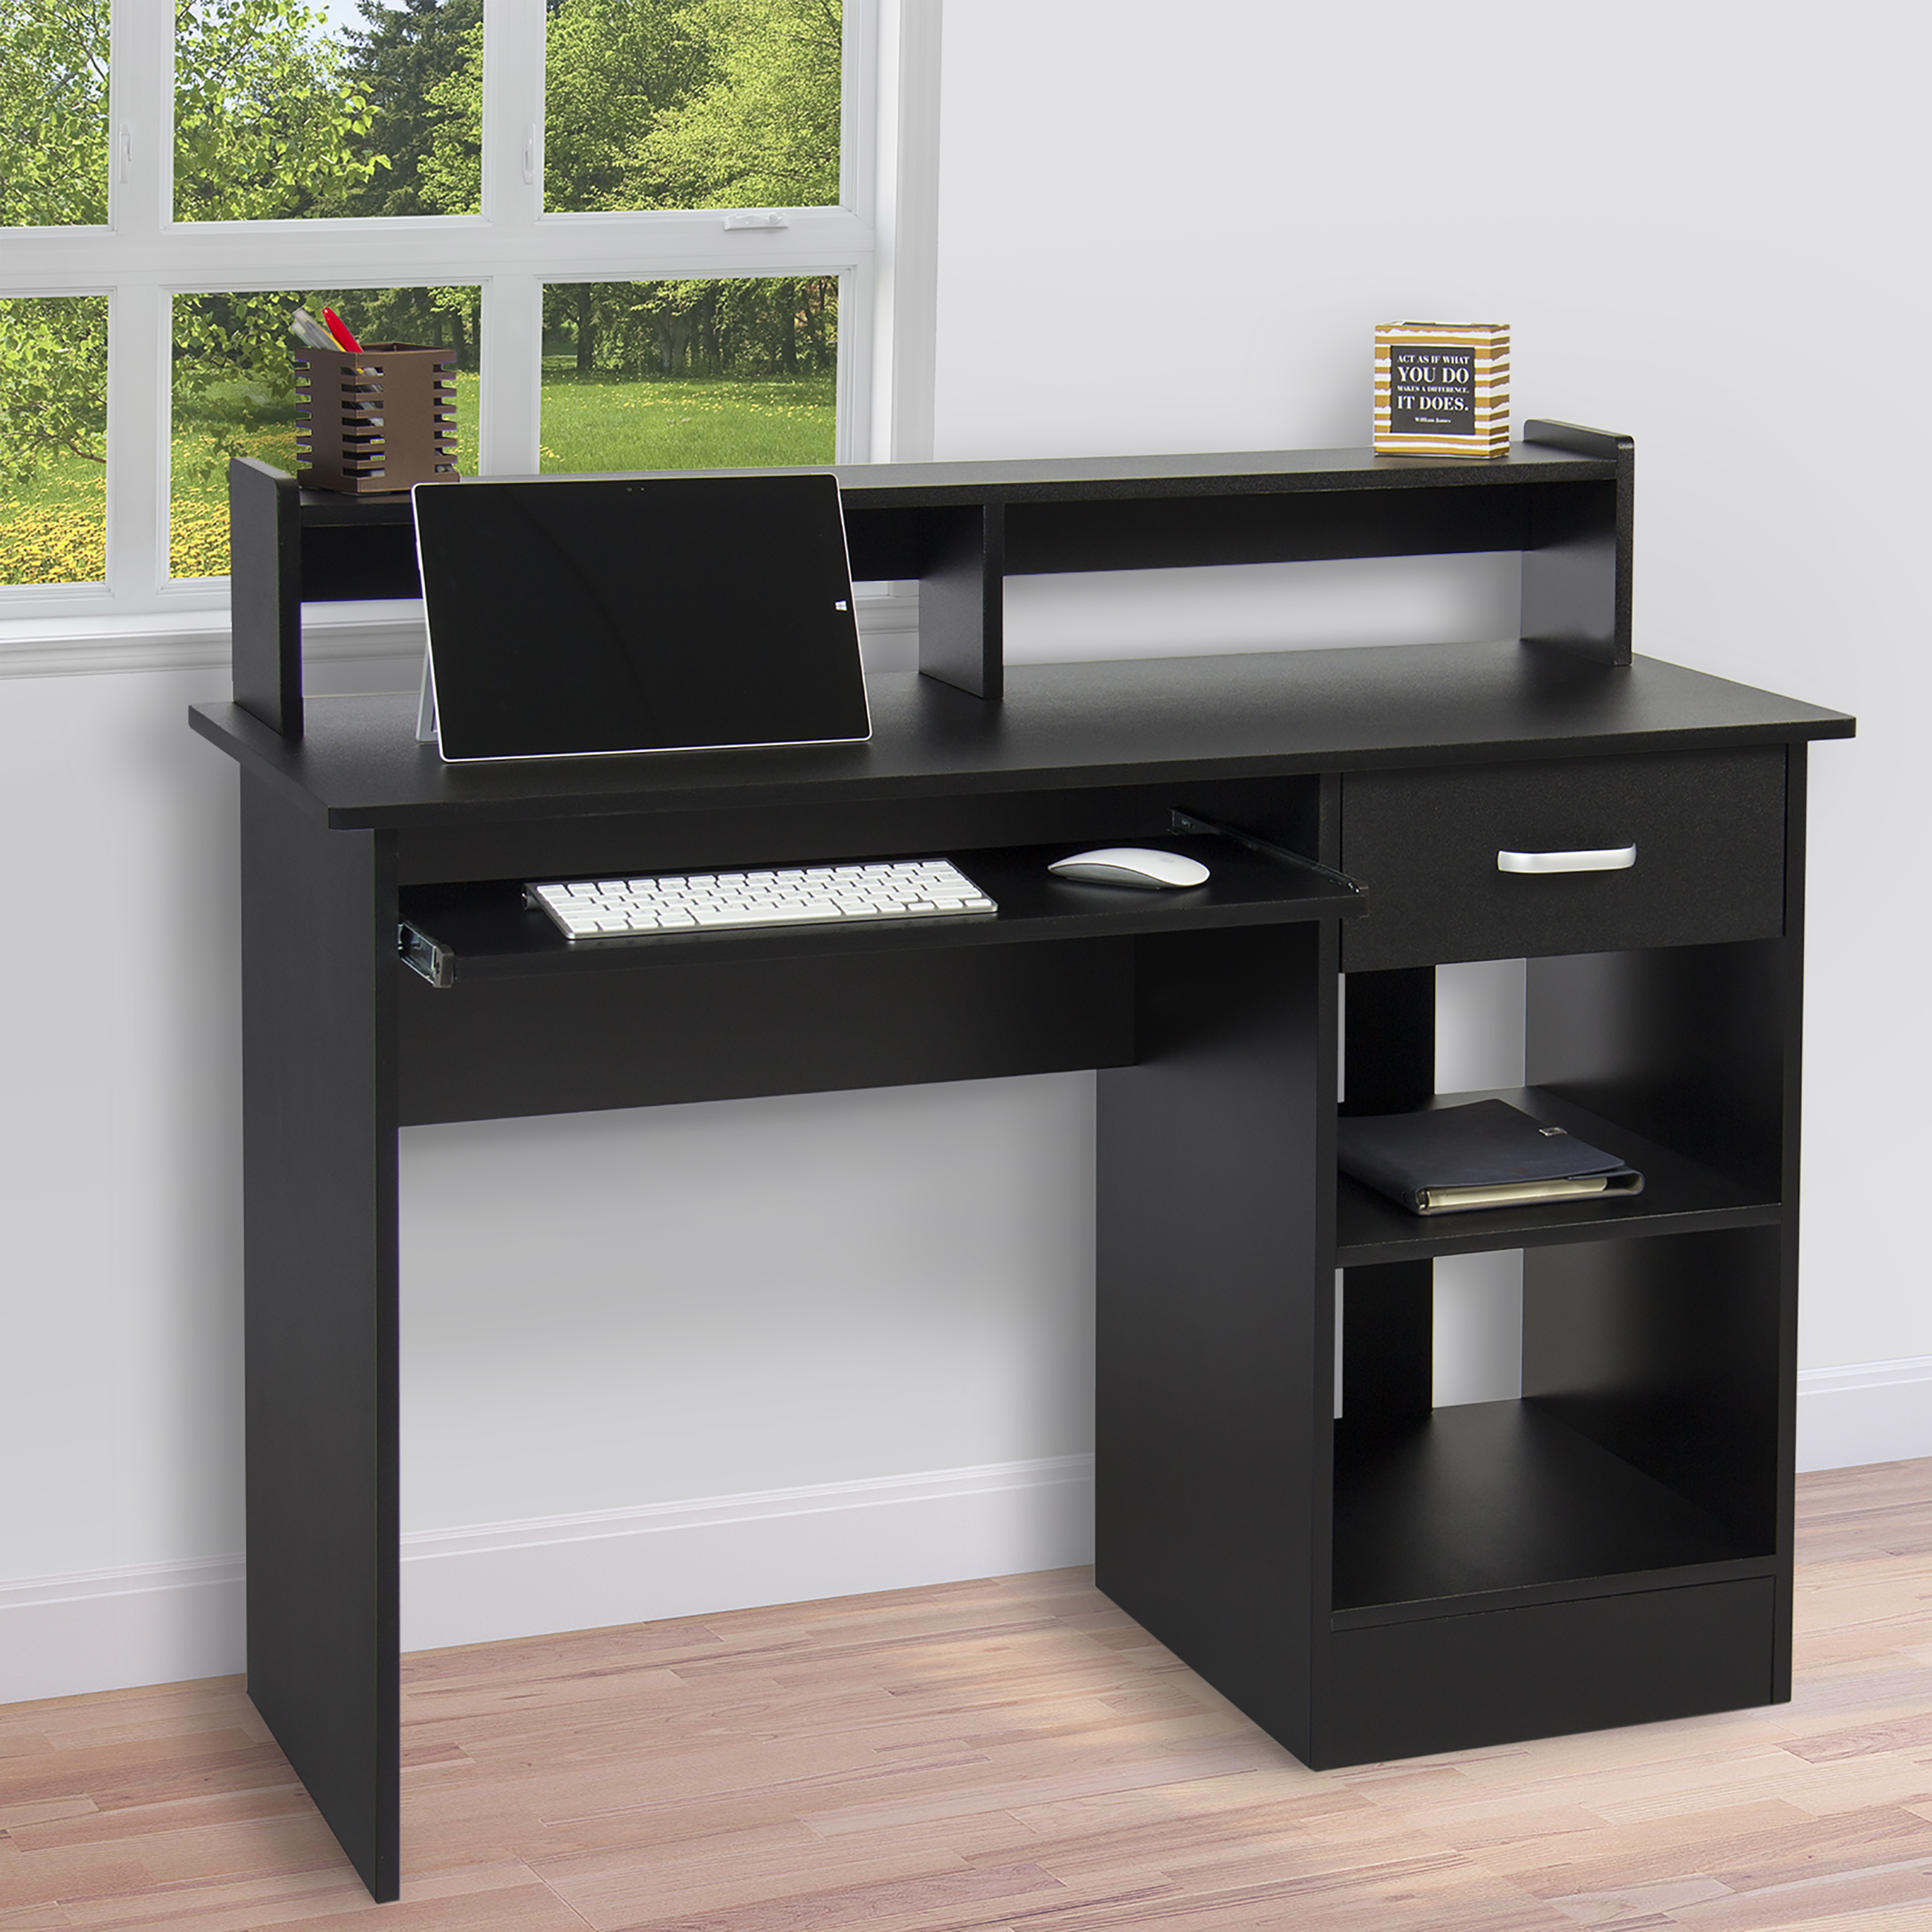 work desks home office. Best Choice Products Computer Desk Home Laptop Table College Office Furniture Work Station - Black Walmart.com Desks F